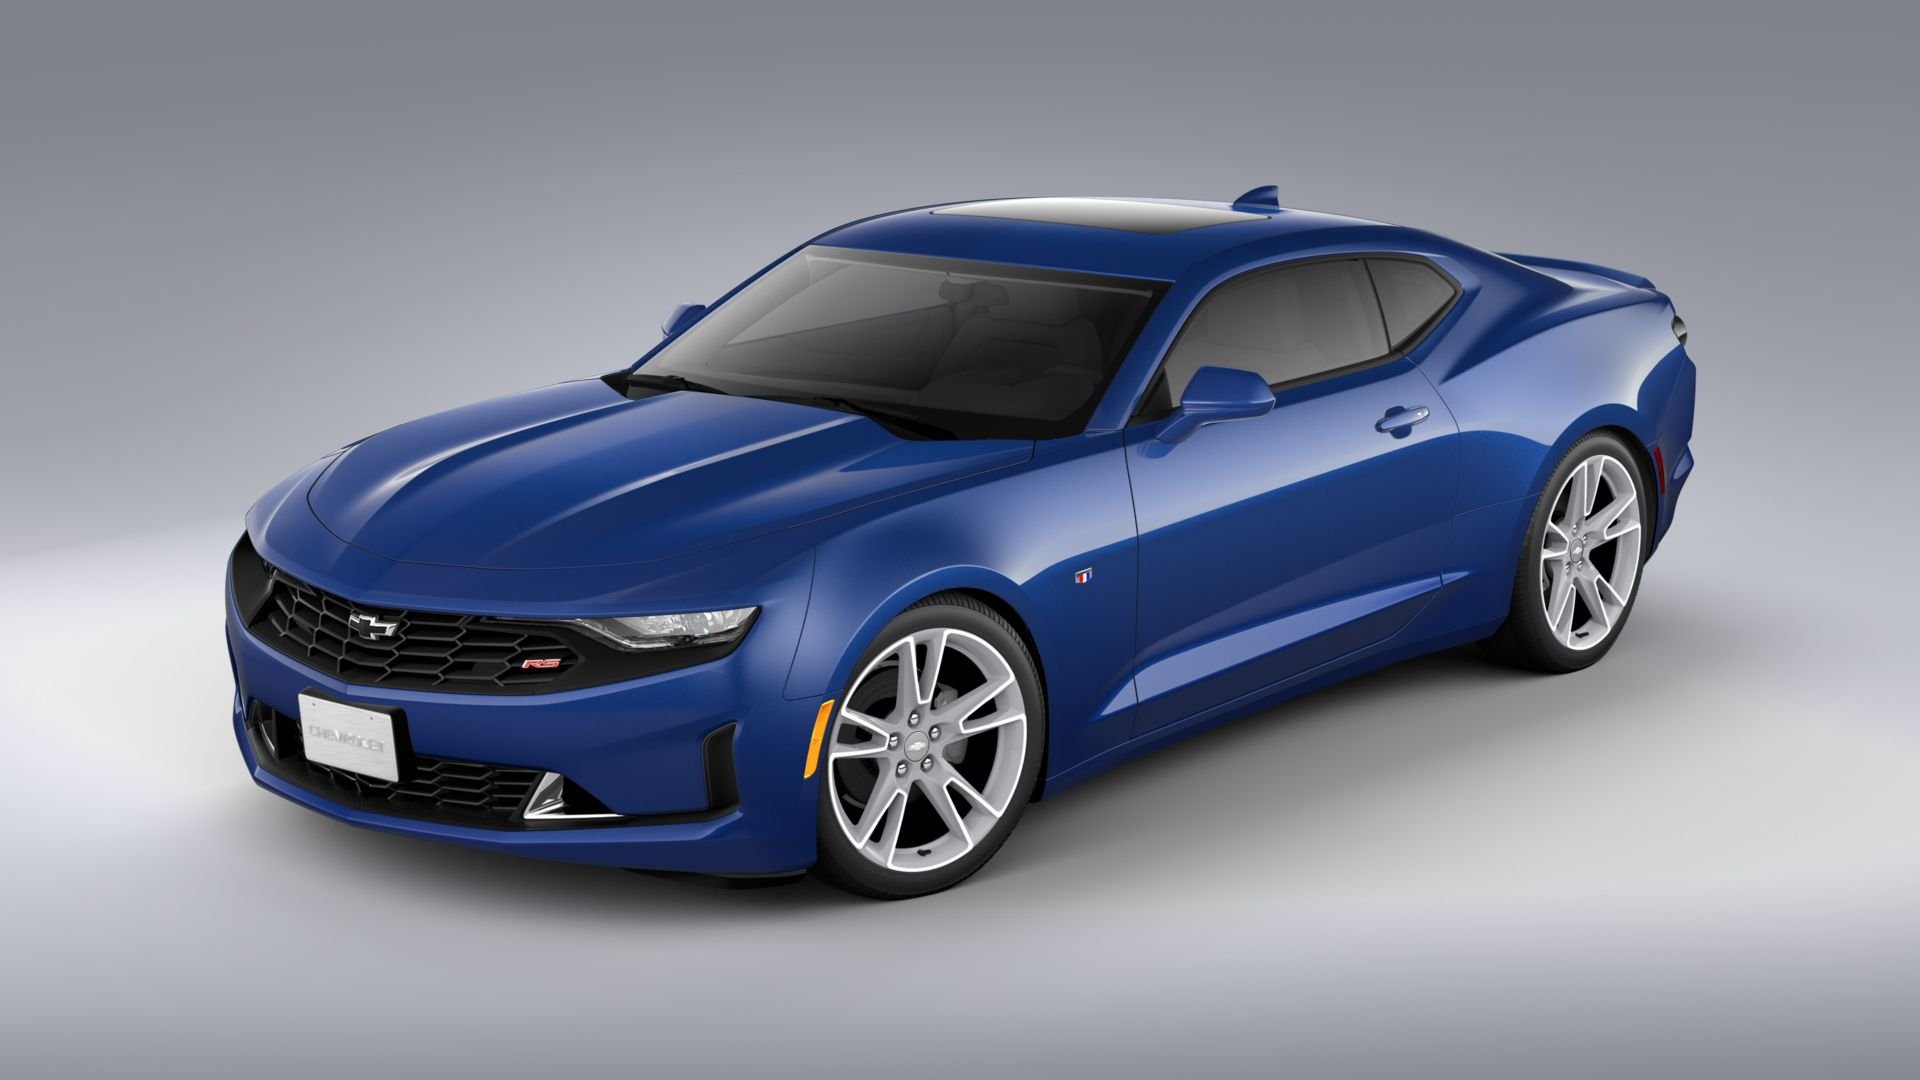 New 2021 Chevrolet Camaro 1LT REAR WHEEL DRIVE Coupe